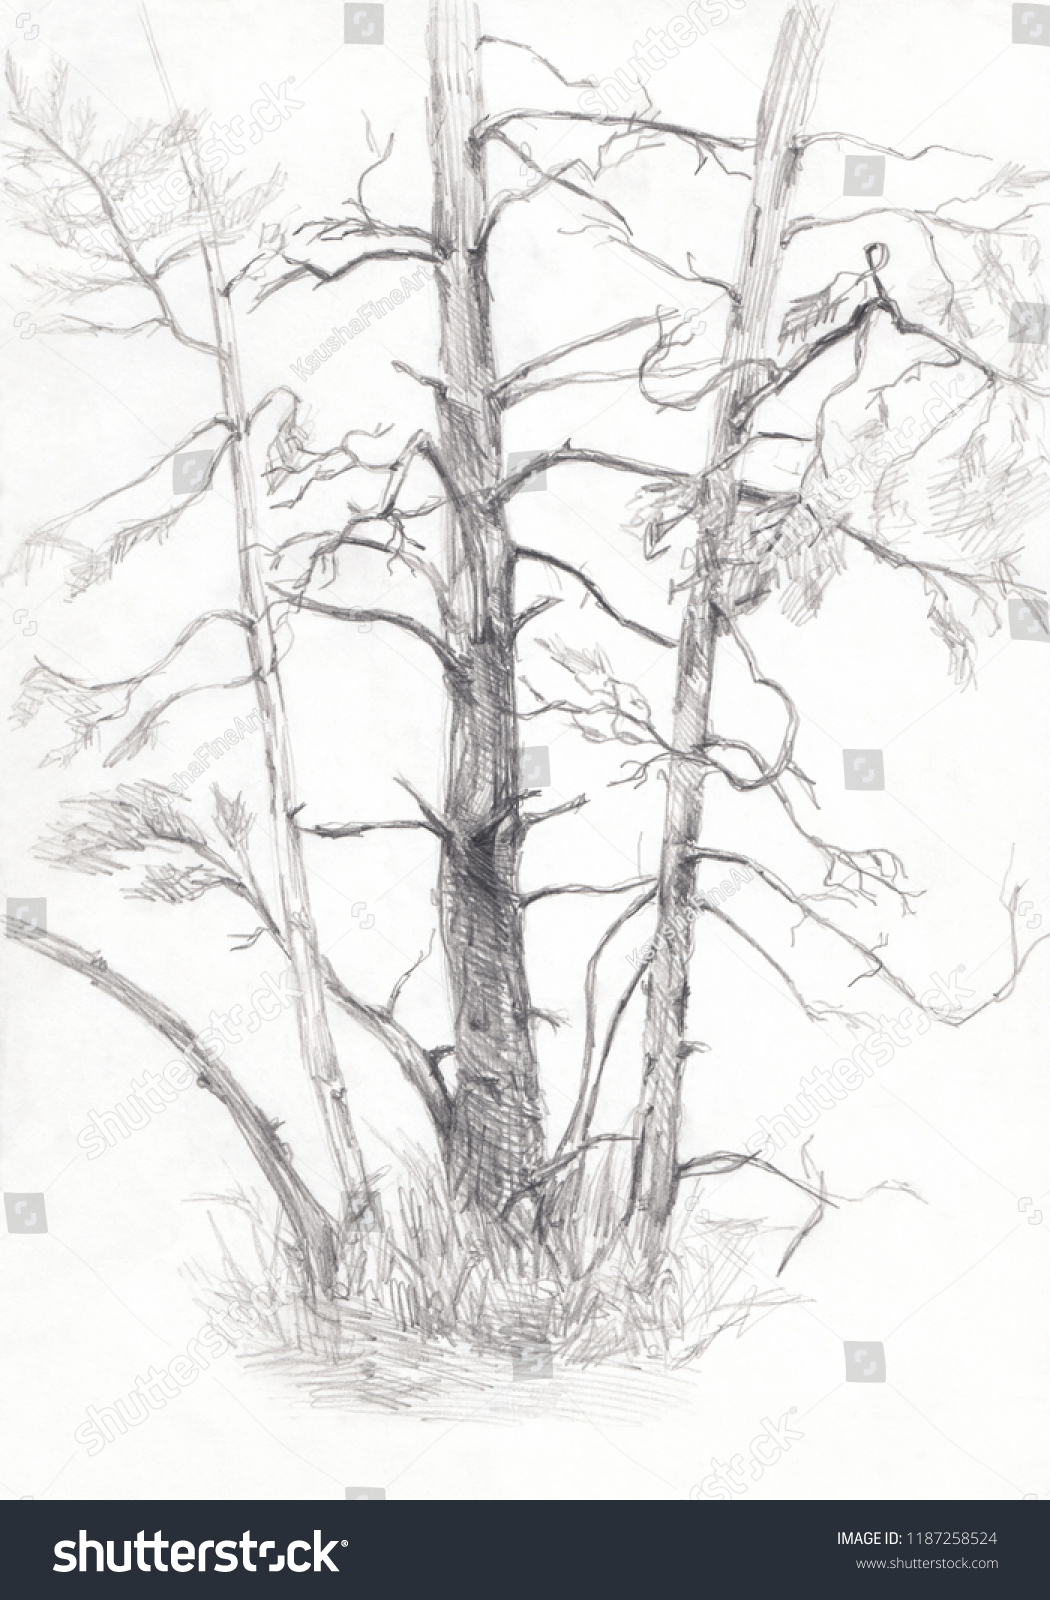 Trees pencil sketch white and black summer forest drawing pines sketch hand drawing